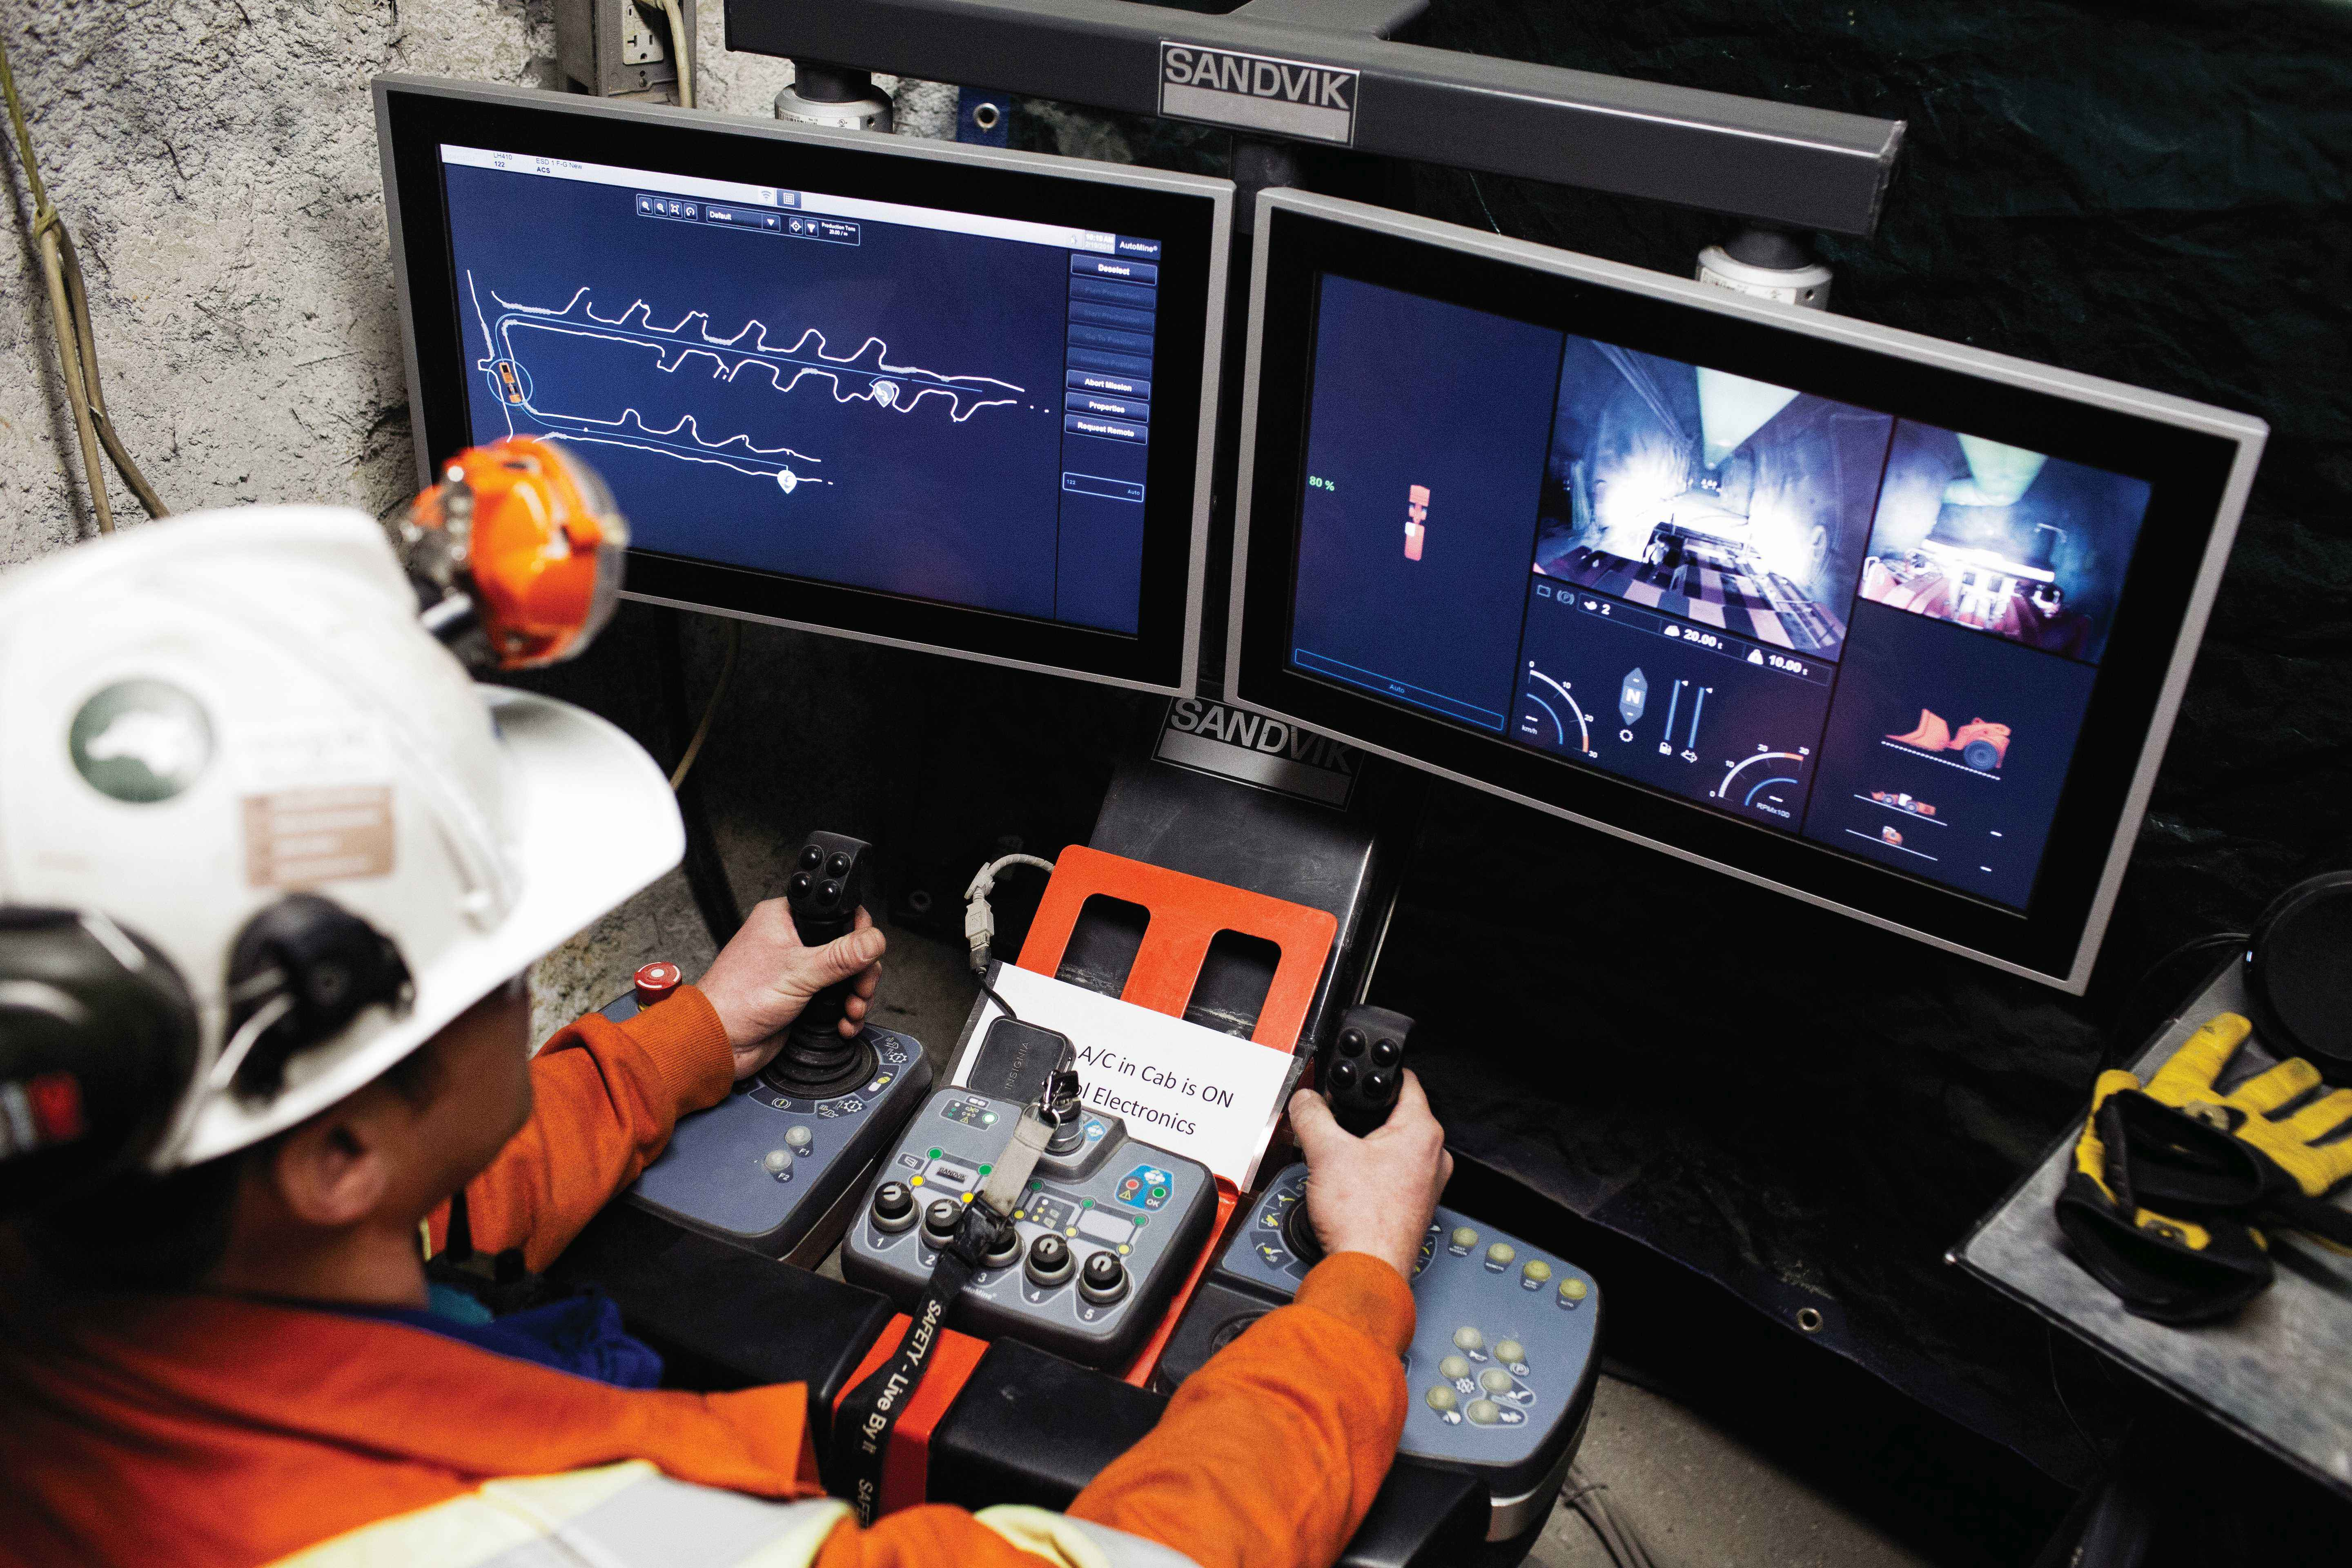 An operator using Sandvik's AutoMine system to drive an LH410 in the New Afton mine. Credit: Sandvik.